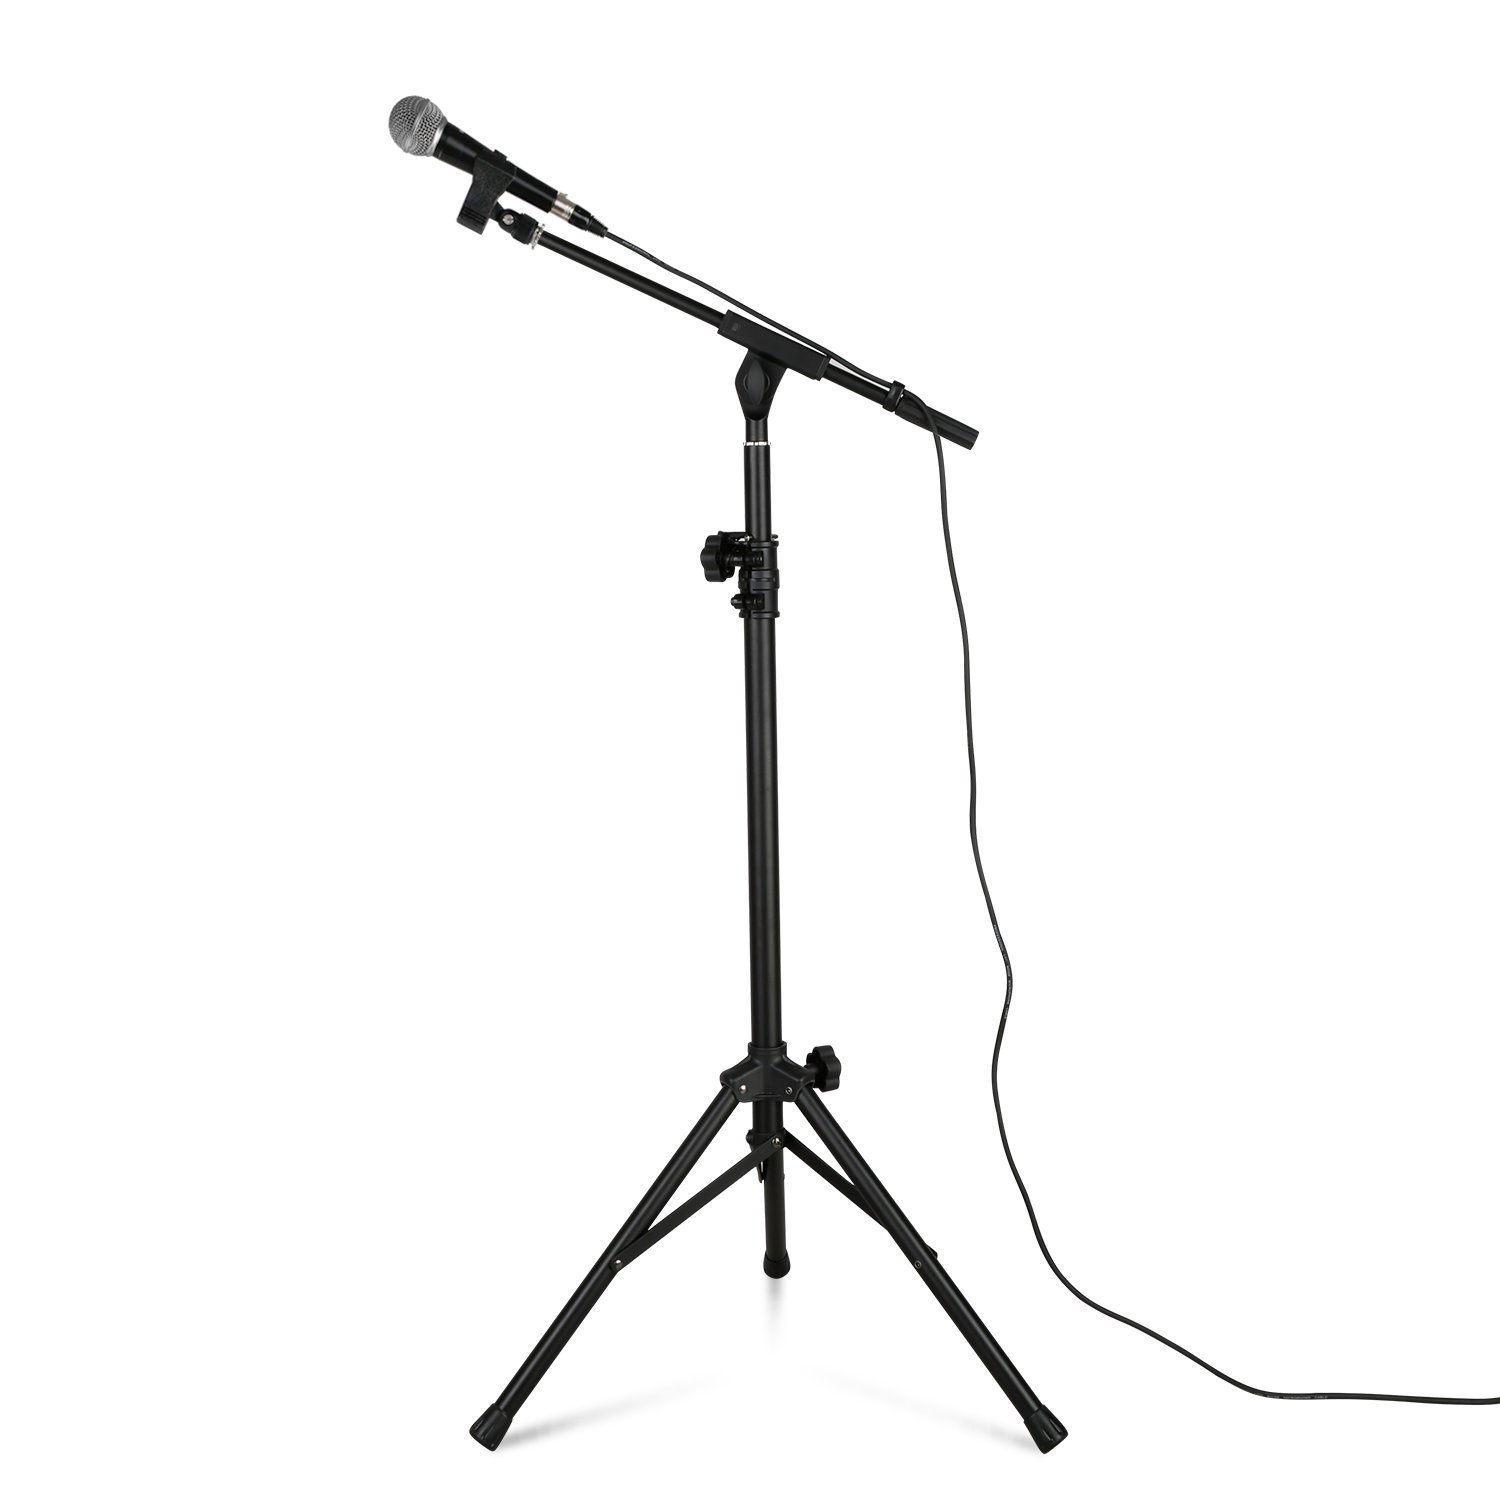 Tenuto Tech Speaker Stand Kit with Microphone, Microphone Holder 10ft XLR Cable (Mic stand set)